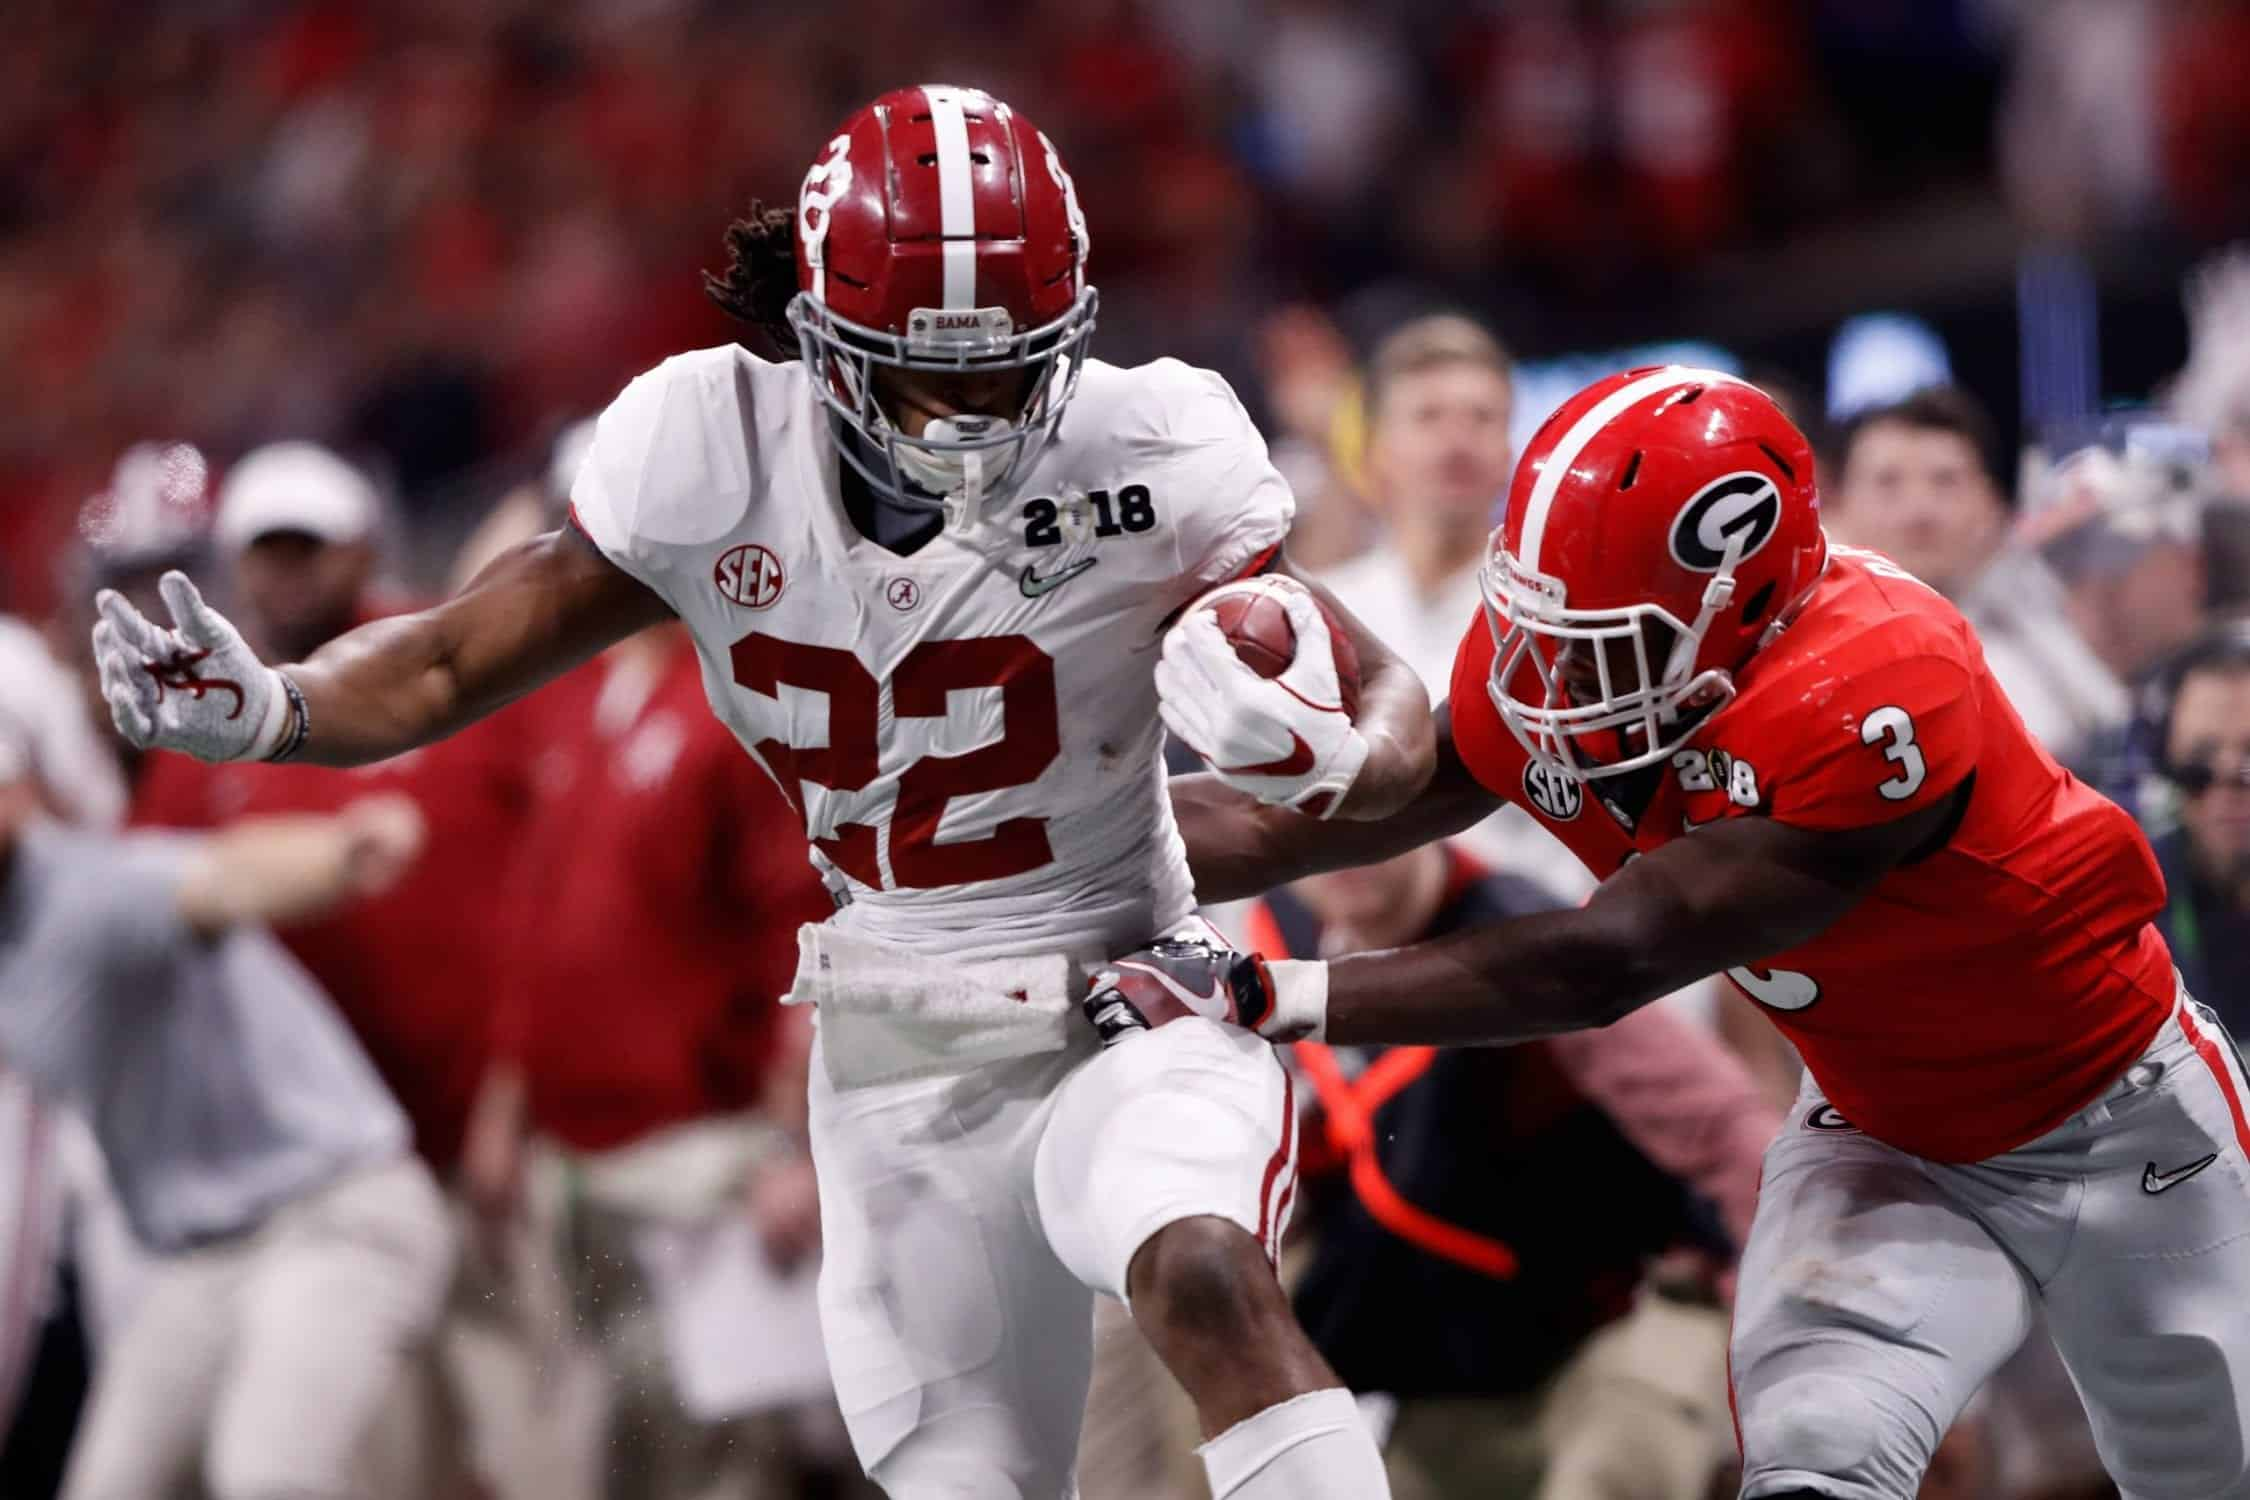 2021 NFL Draft: Najee Harris is most well rounded back in class